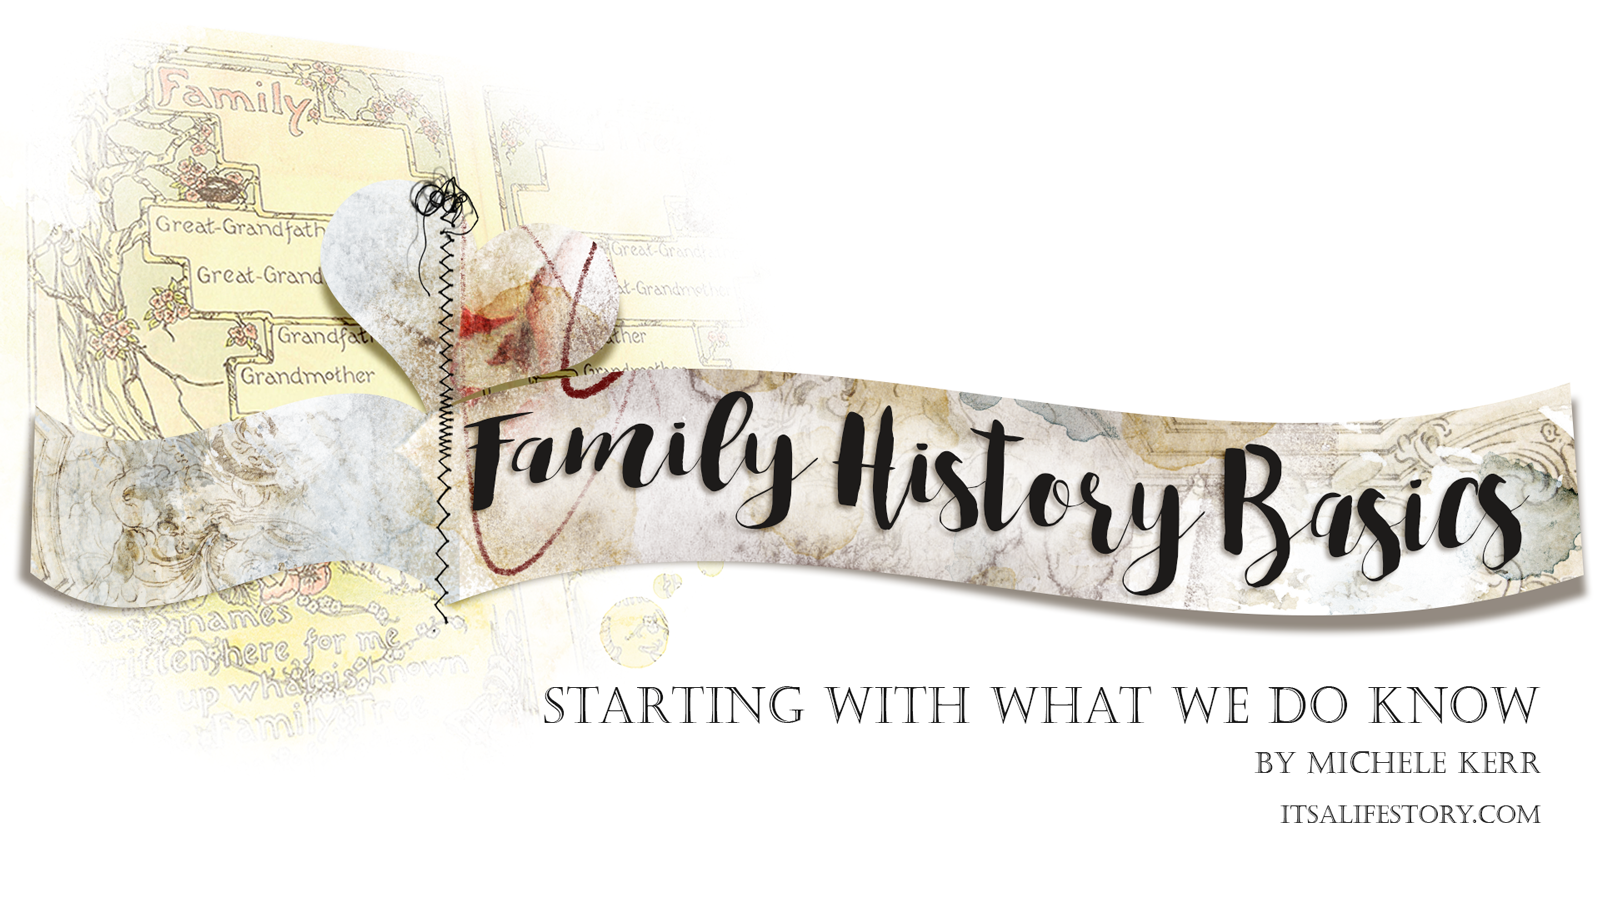 ItsALifeStory.com _ FAMILY HISTORY BASICS - Starting With What We DO Know